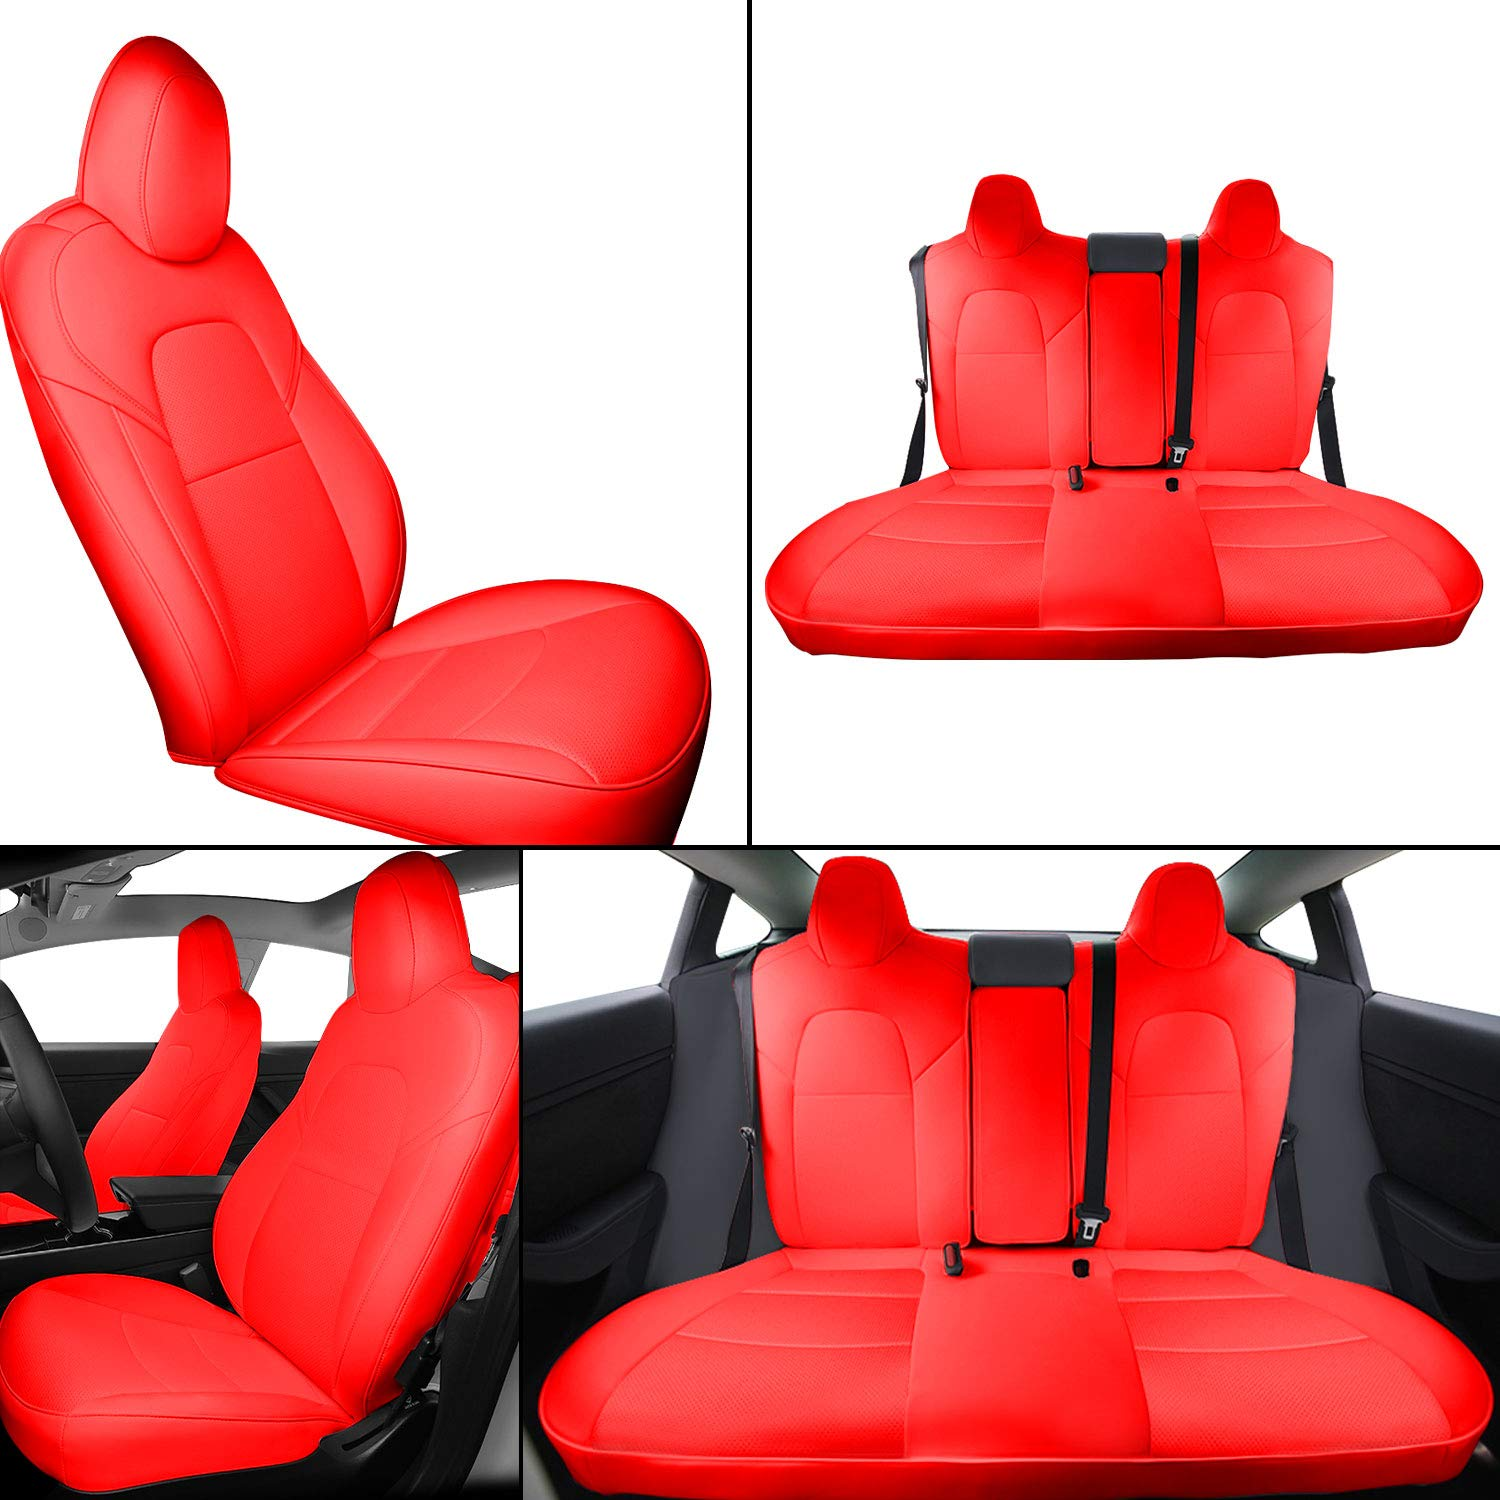 Interior Pro Model 3 Car Seat Cover, Seats Cushions PU Leather Custom for Tesla Model 3 2016-2019 All Season 5-Seat Protectors Pad Mat Leatherette Airbag Waterproof Wear-Proof Anti-Slip (Red)